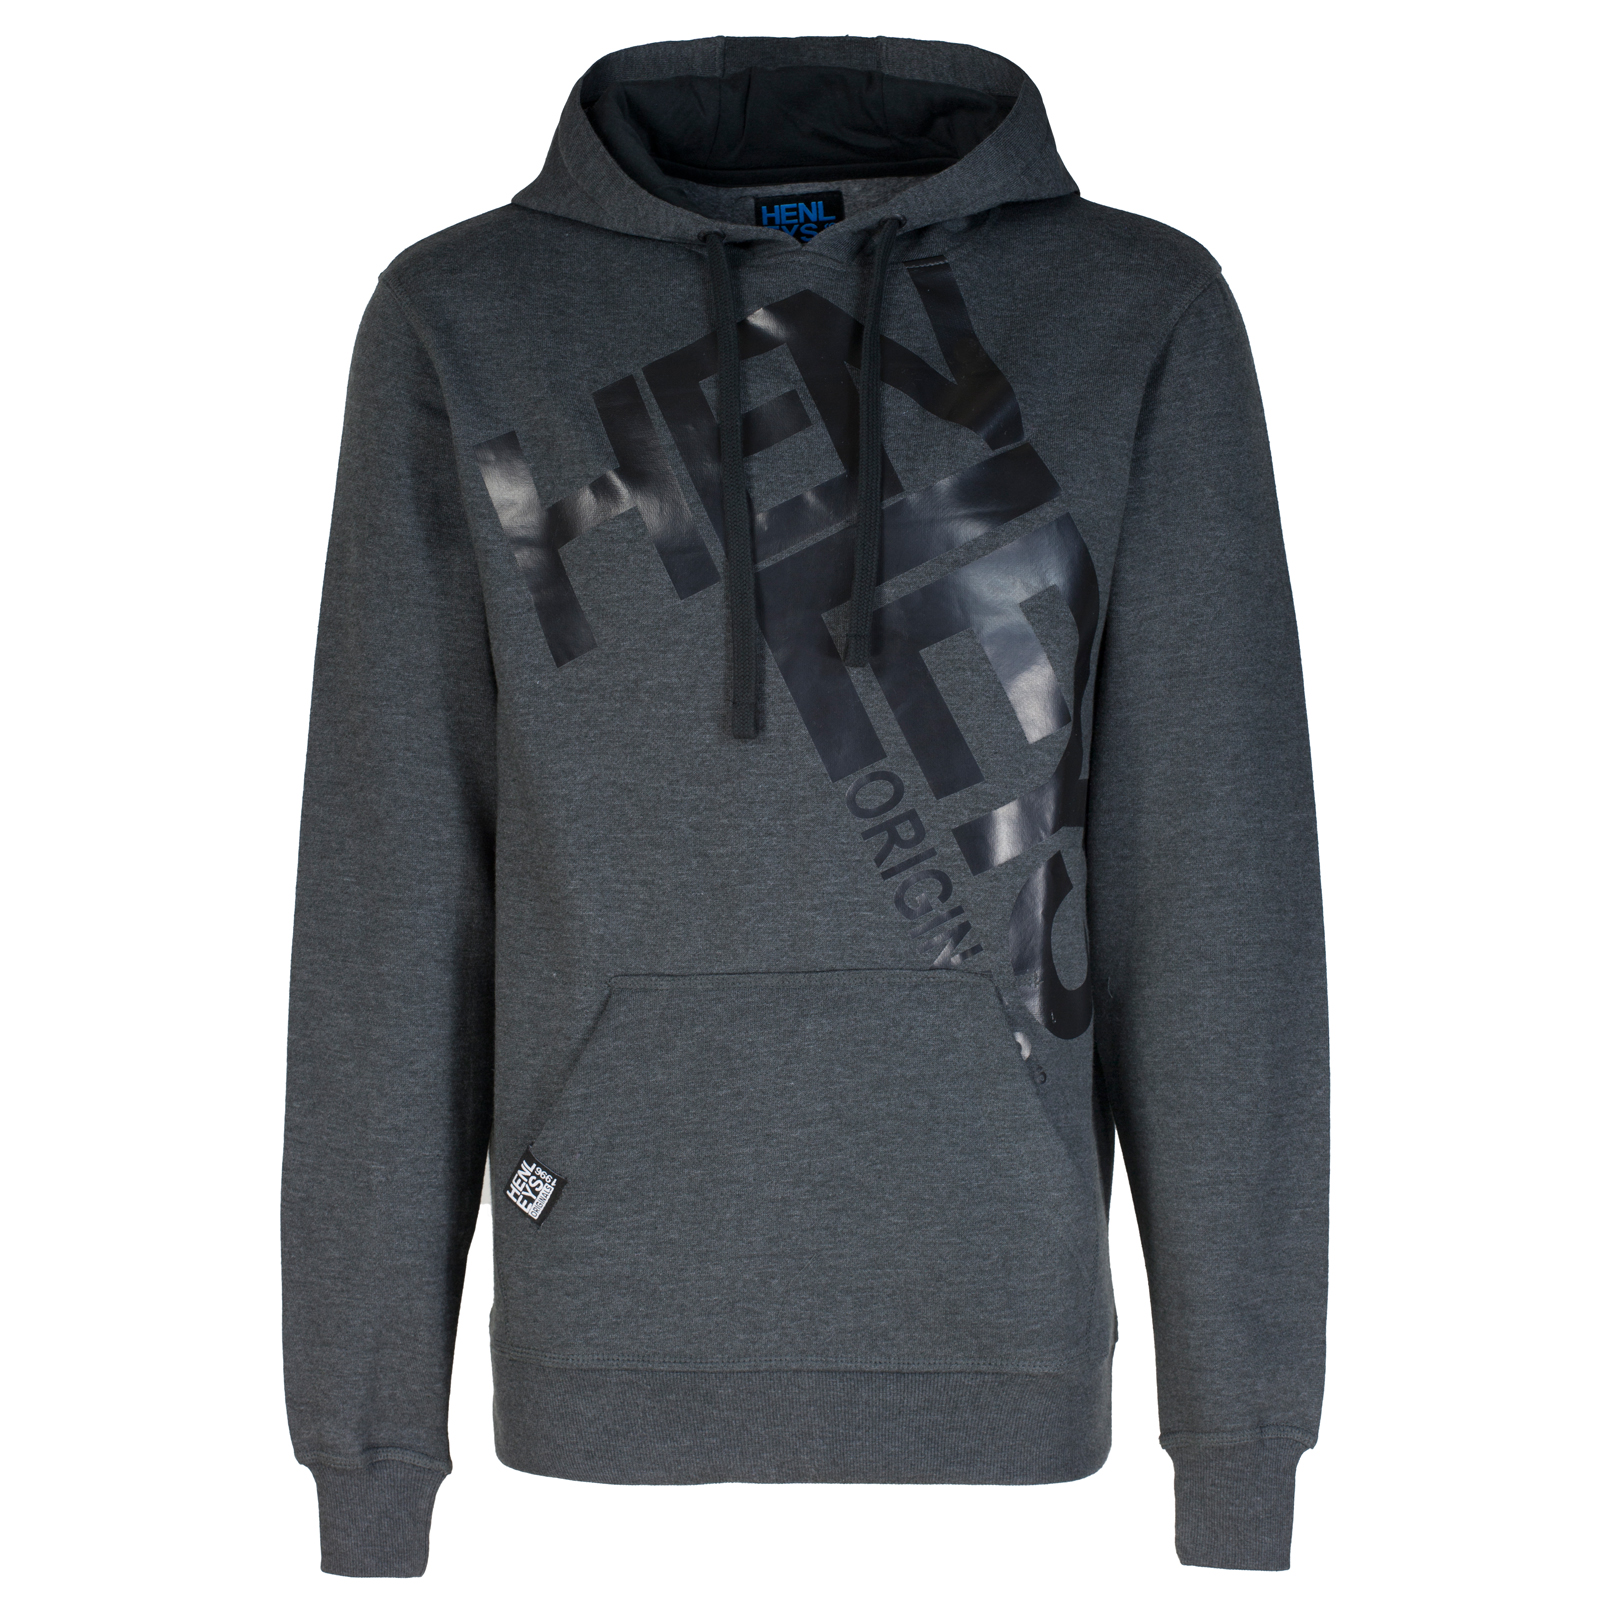 Stuccu: Best Deals on mens henleys hoodies. Up To 70% offBest Offers· Exclusive Deals· Lowest Prices· Compare Prices.